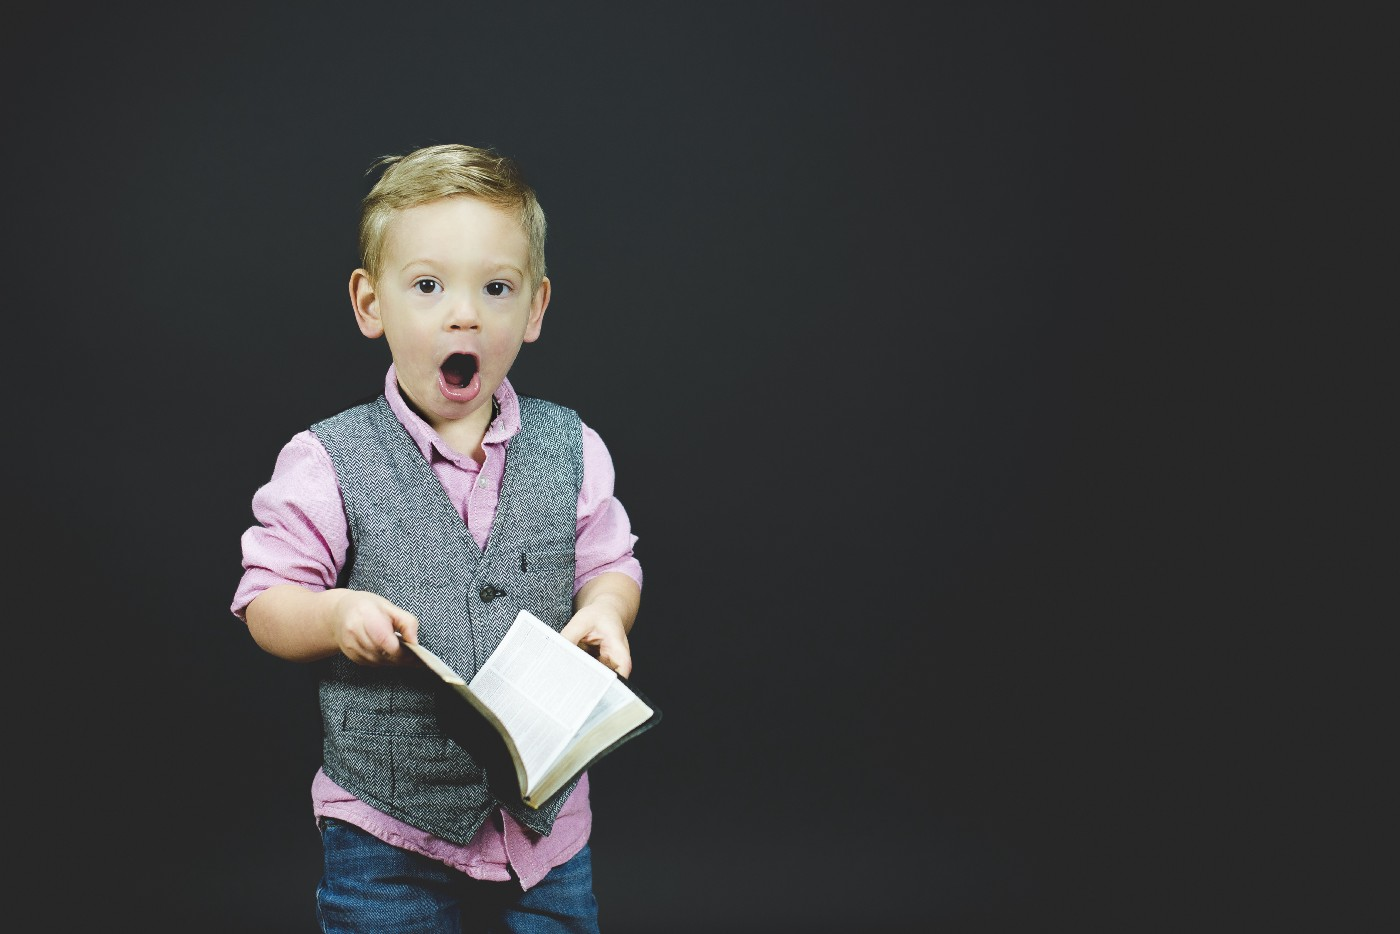 Little boy holds a book open.